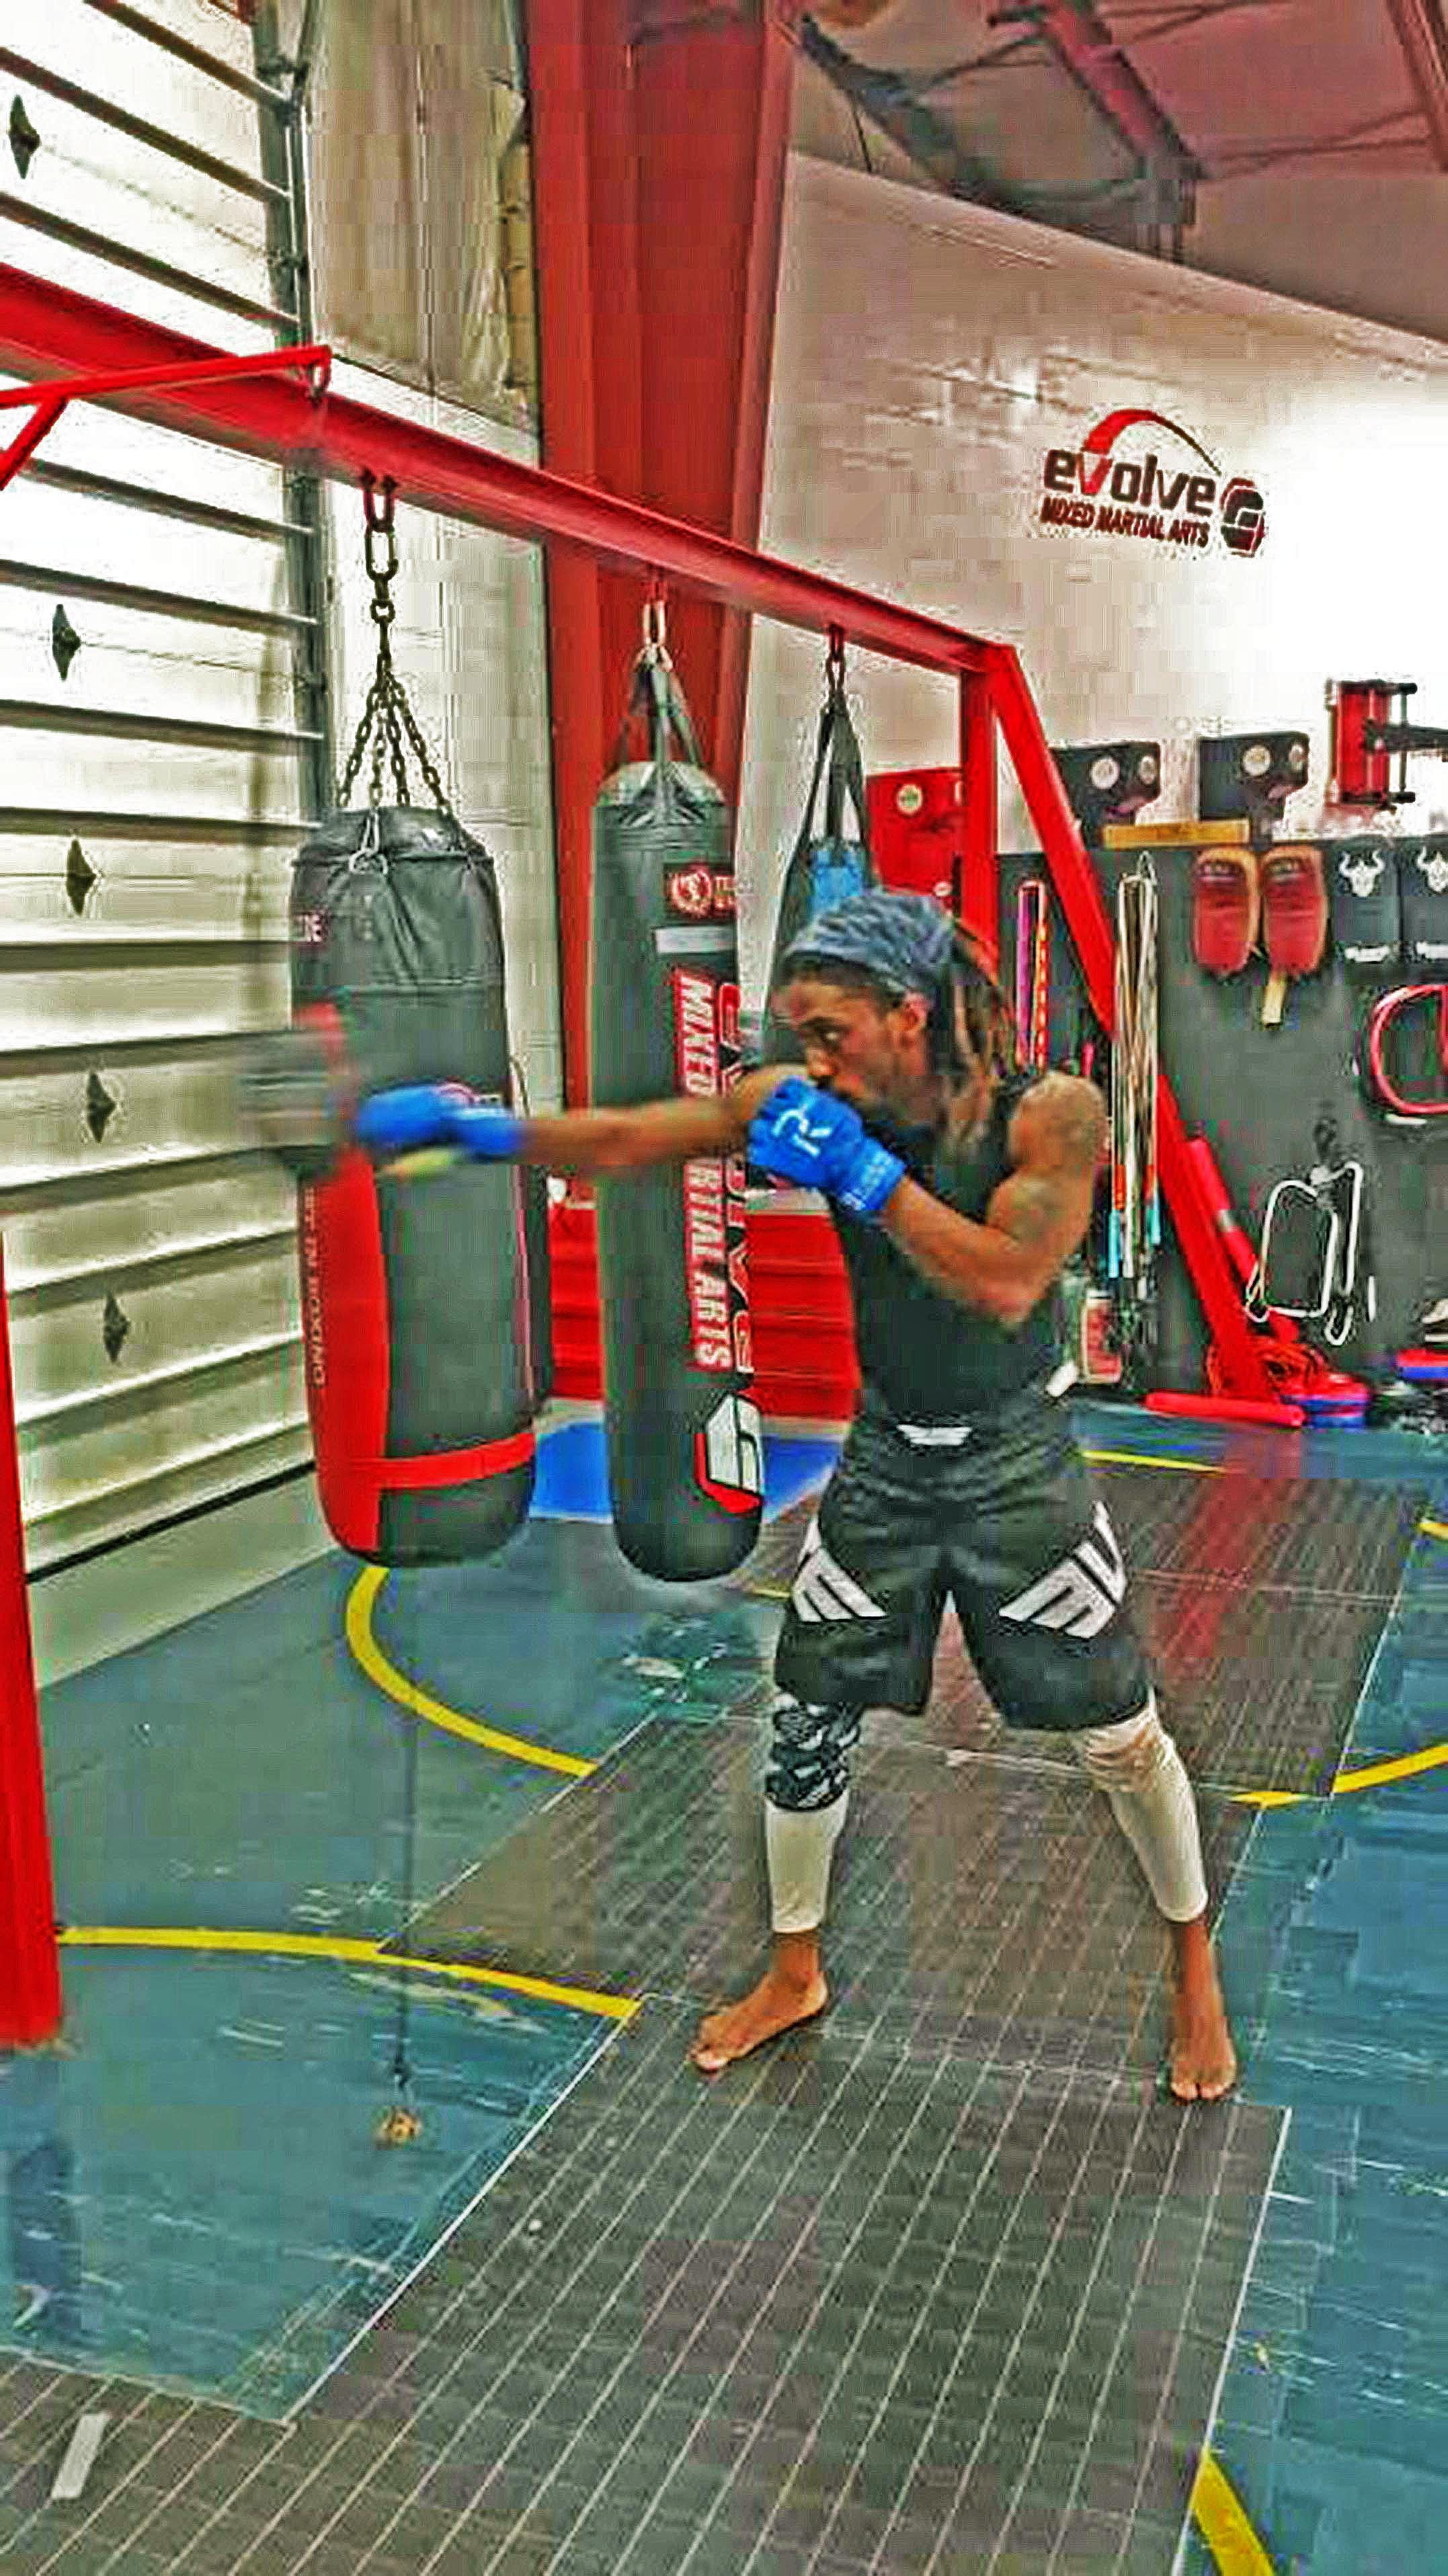 Elite-sports-Team-Elite-MMA-Shawn Rall-image9.jpeg